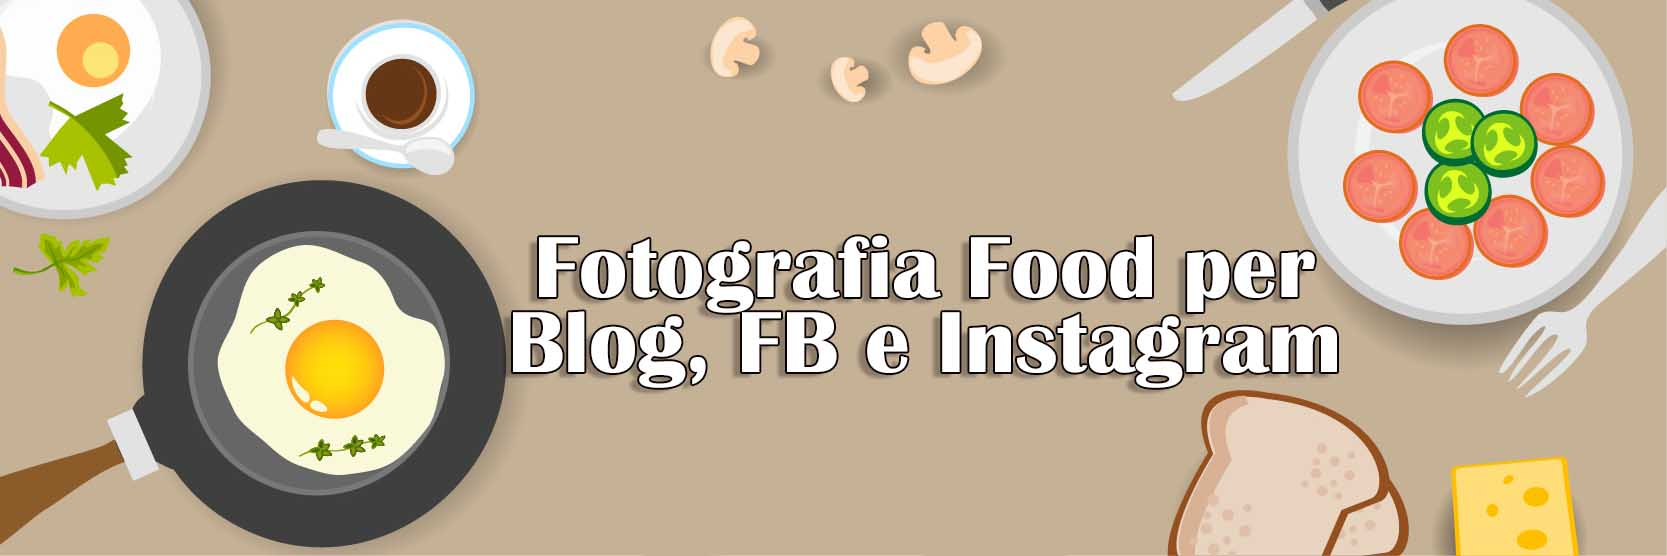 fotografia-food